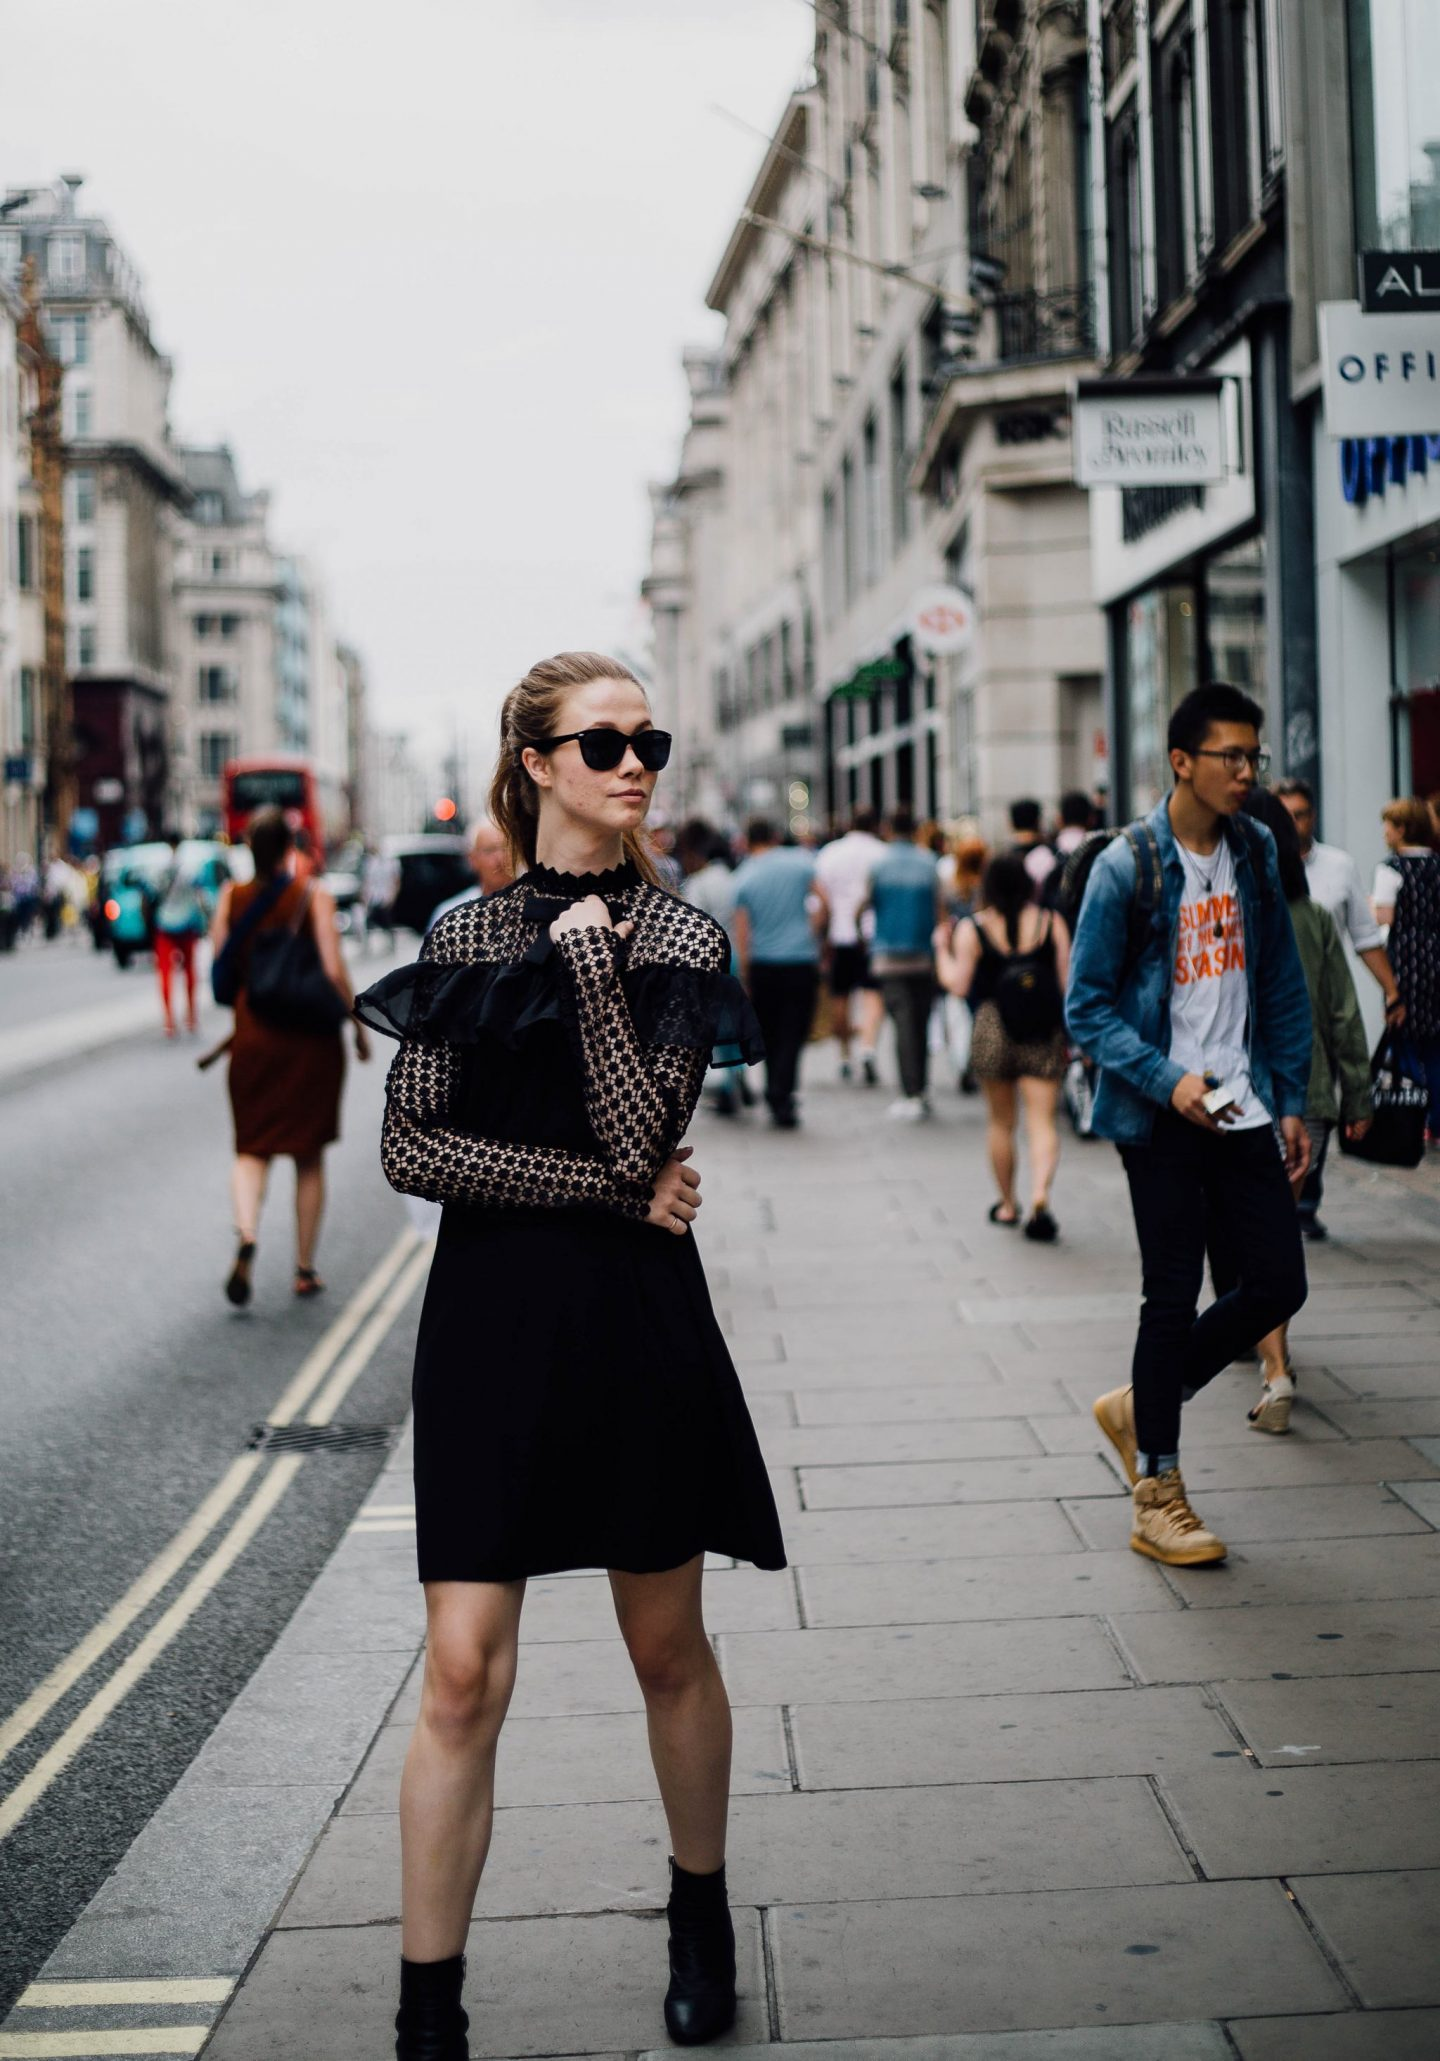 Monochrome Minimalist | Self Discovery | London | Oxford Street | Fashion | Amy Lynn Clothing